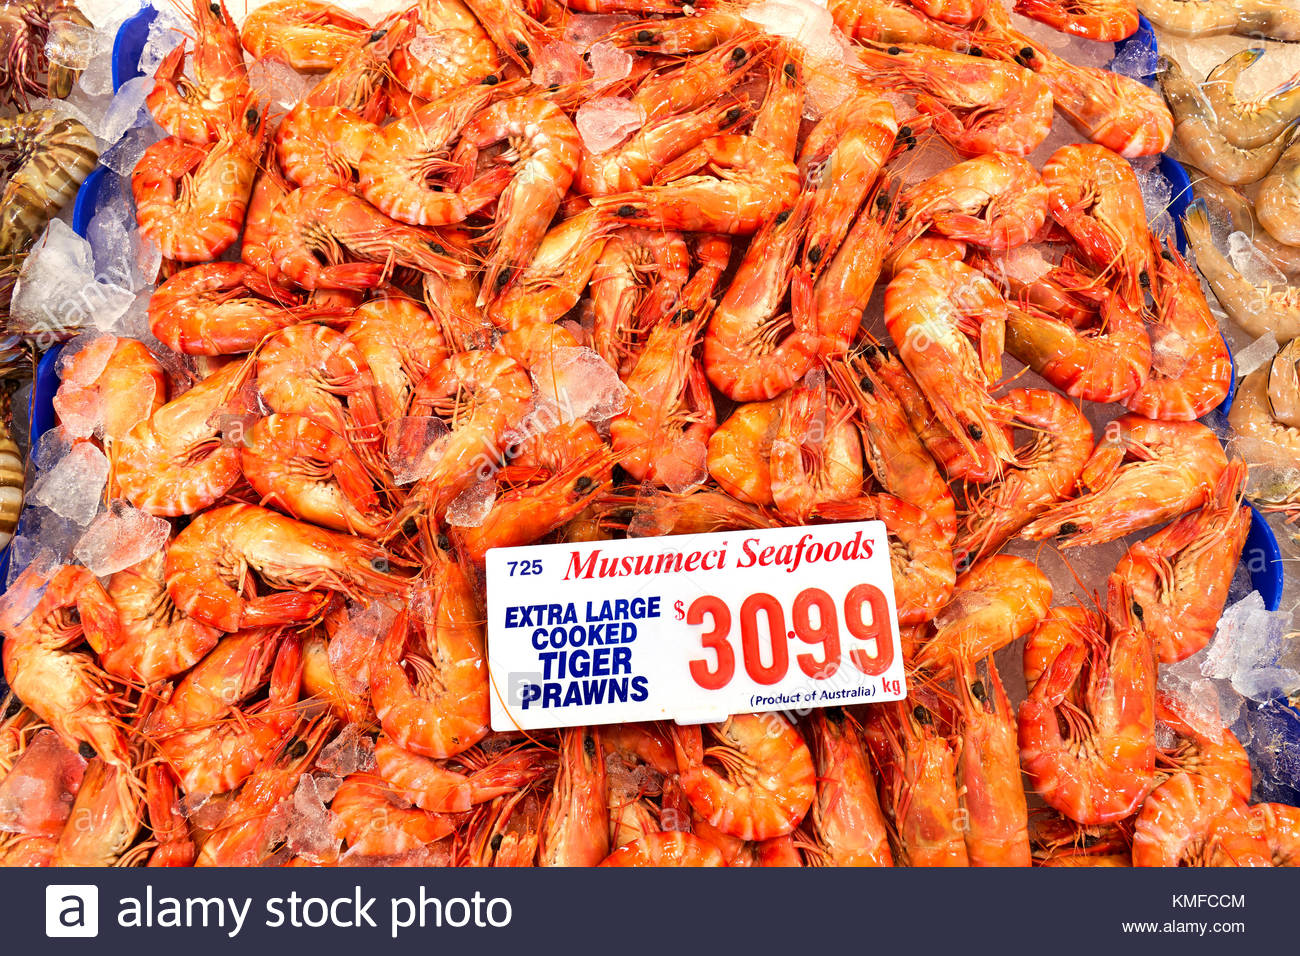 The Sydney Fish Market, Australia Stock Photo: 167525476 - Alamy